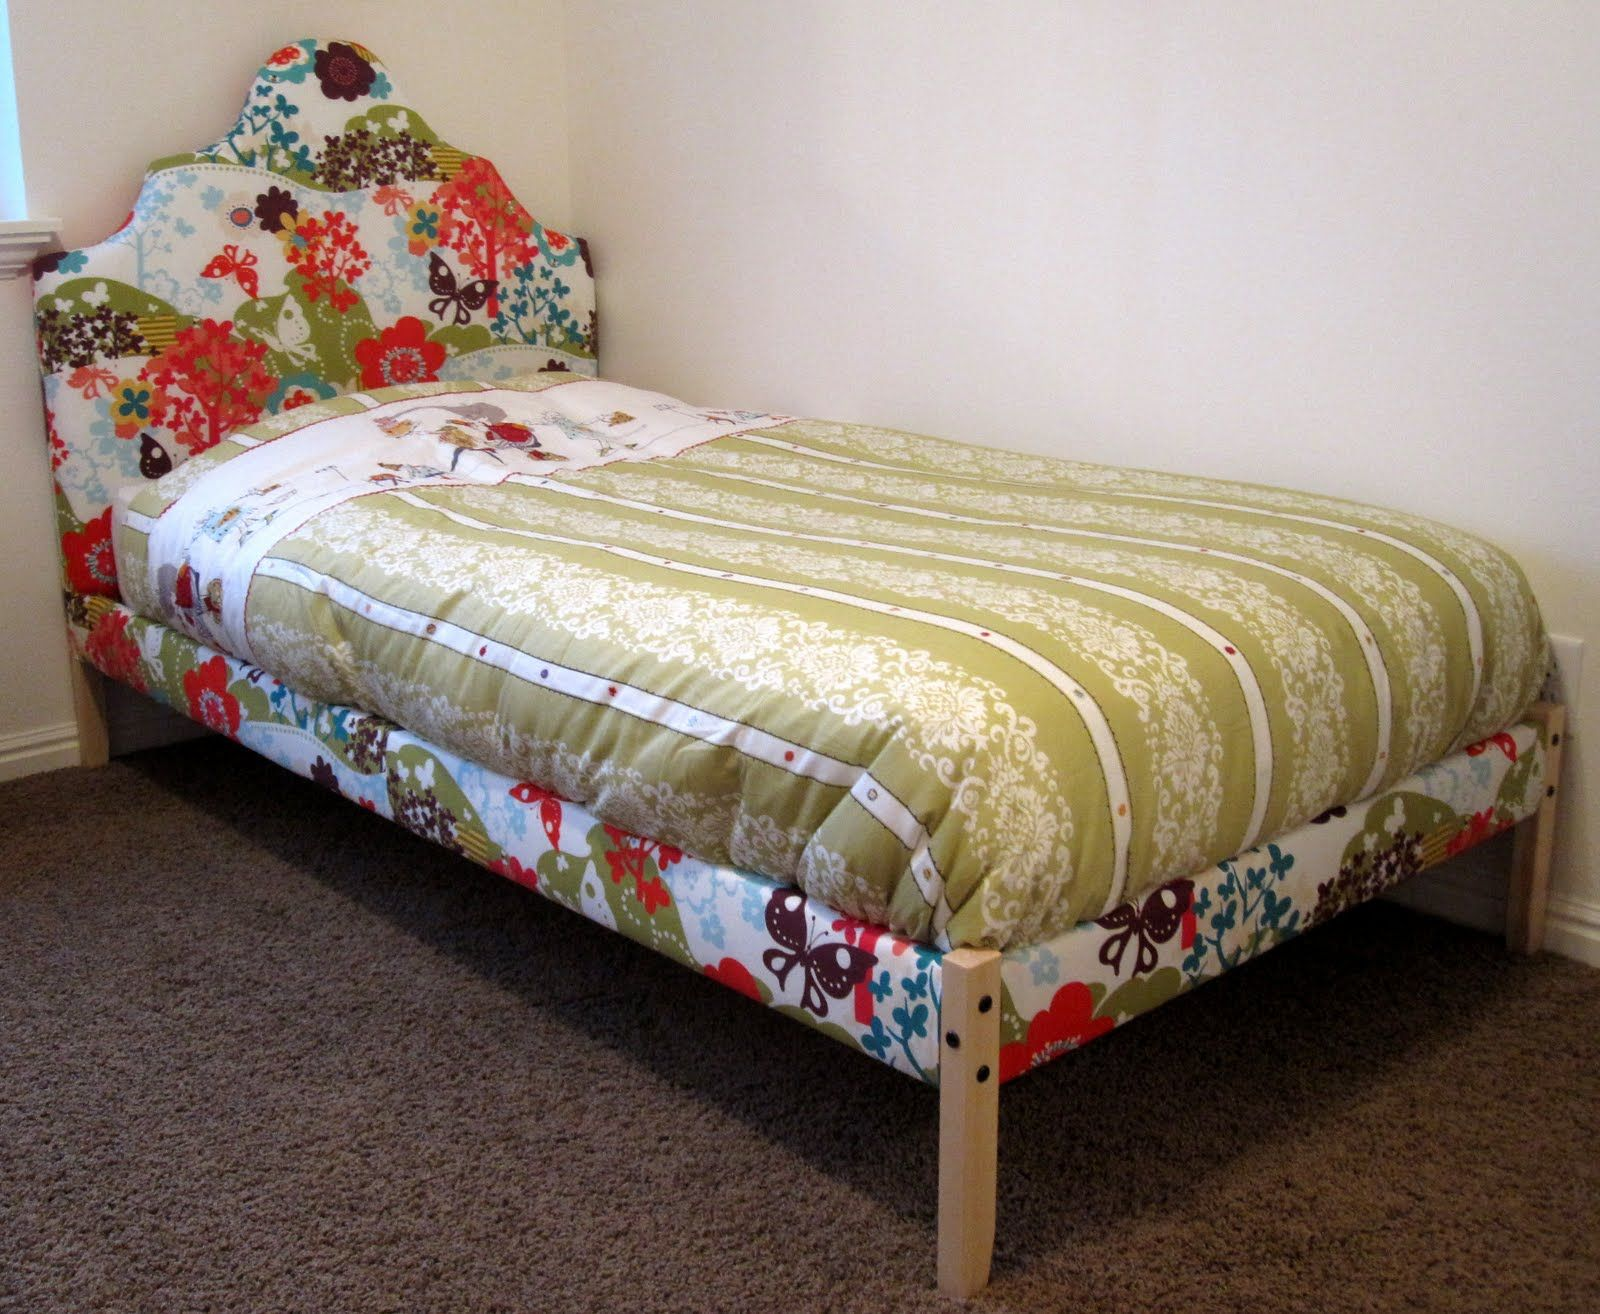 All Things Campbell: Ivy's Upholstered Bed (ikea fjellse twin bed hacked  into a beautiful